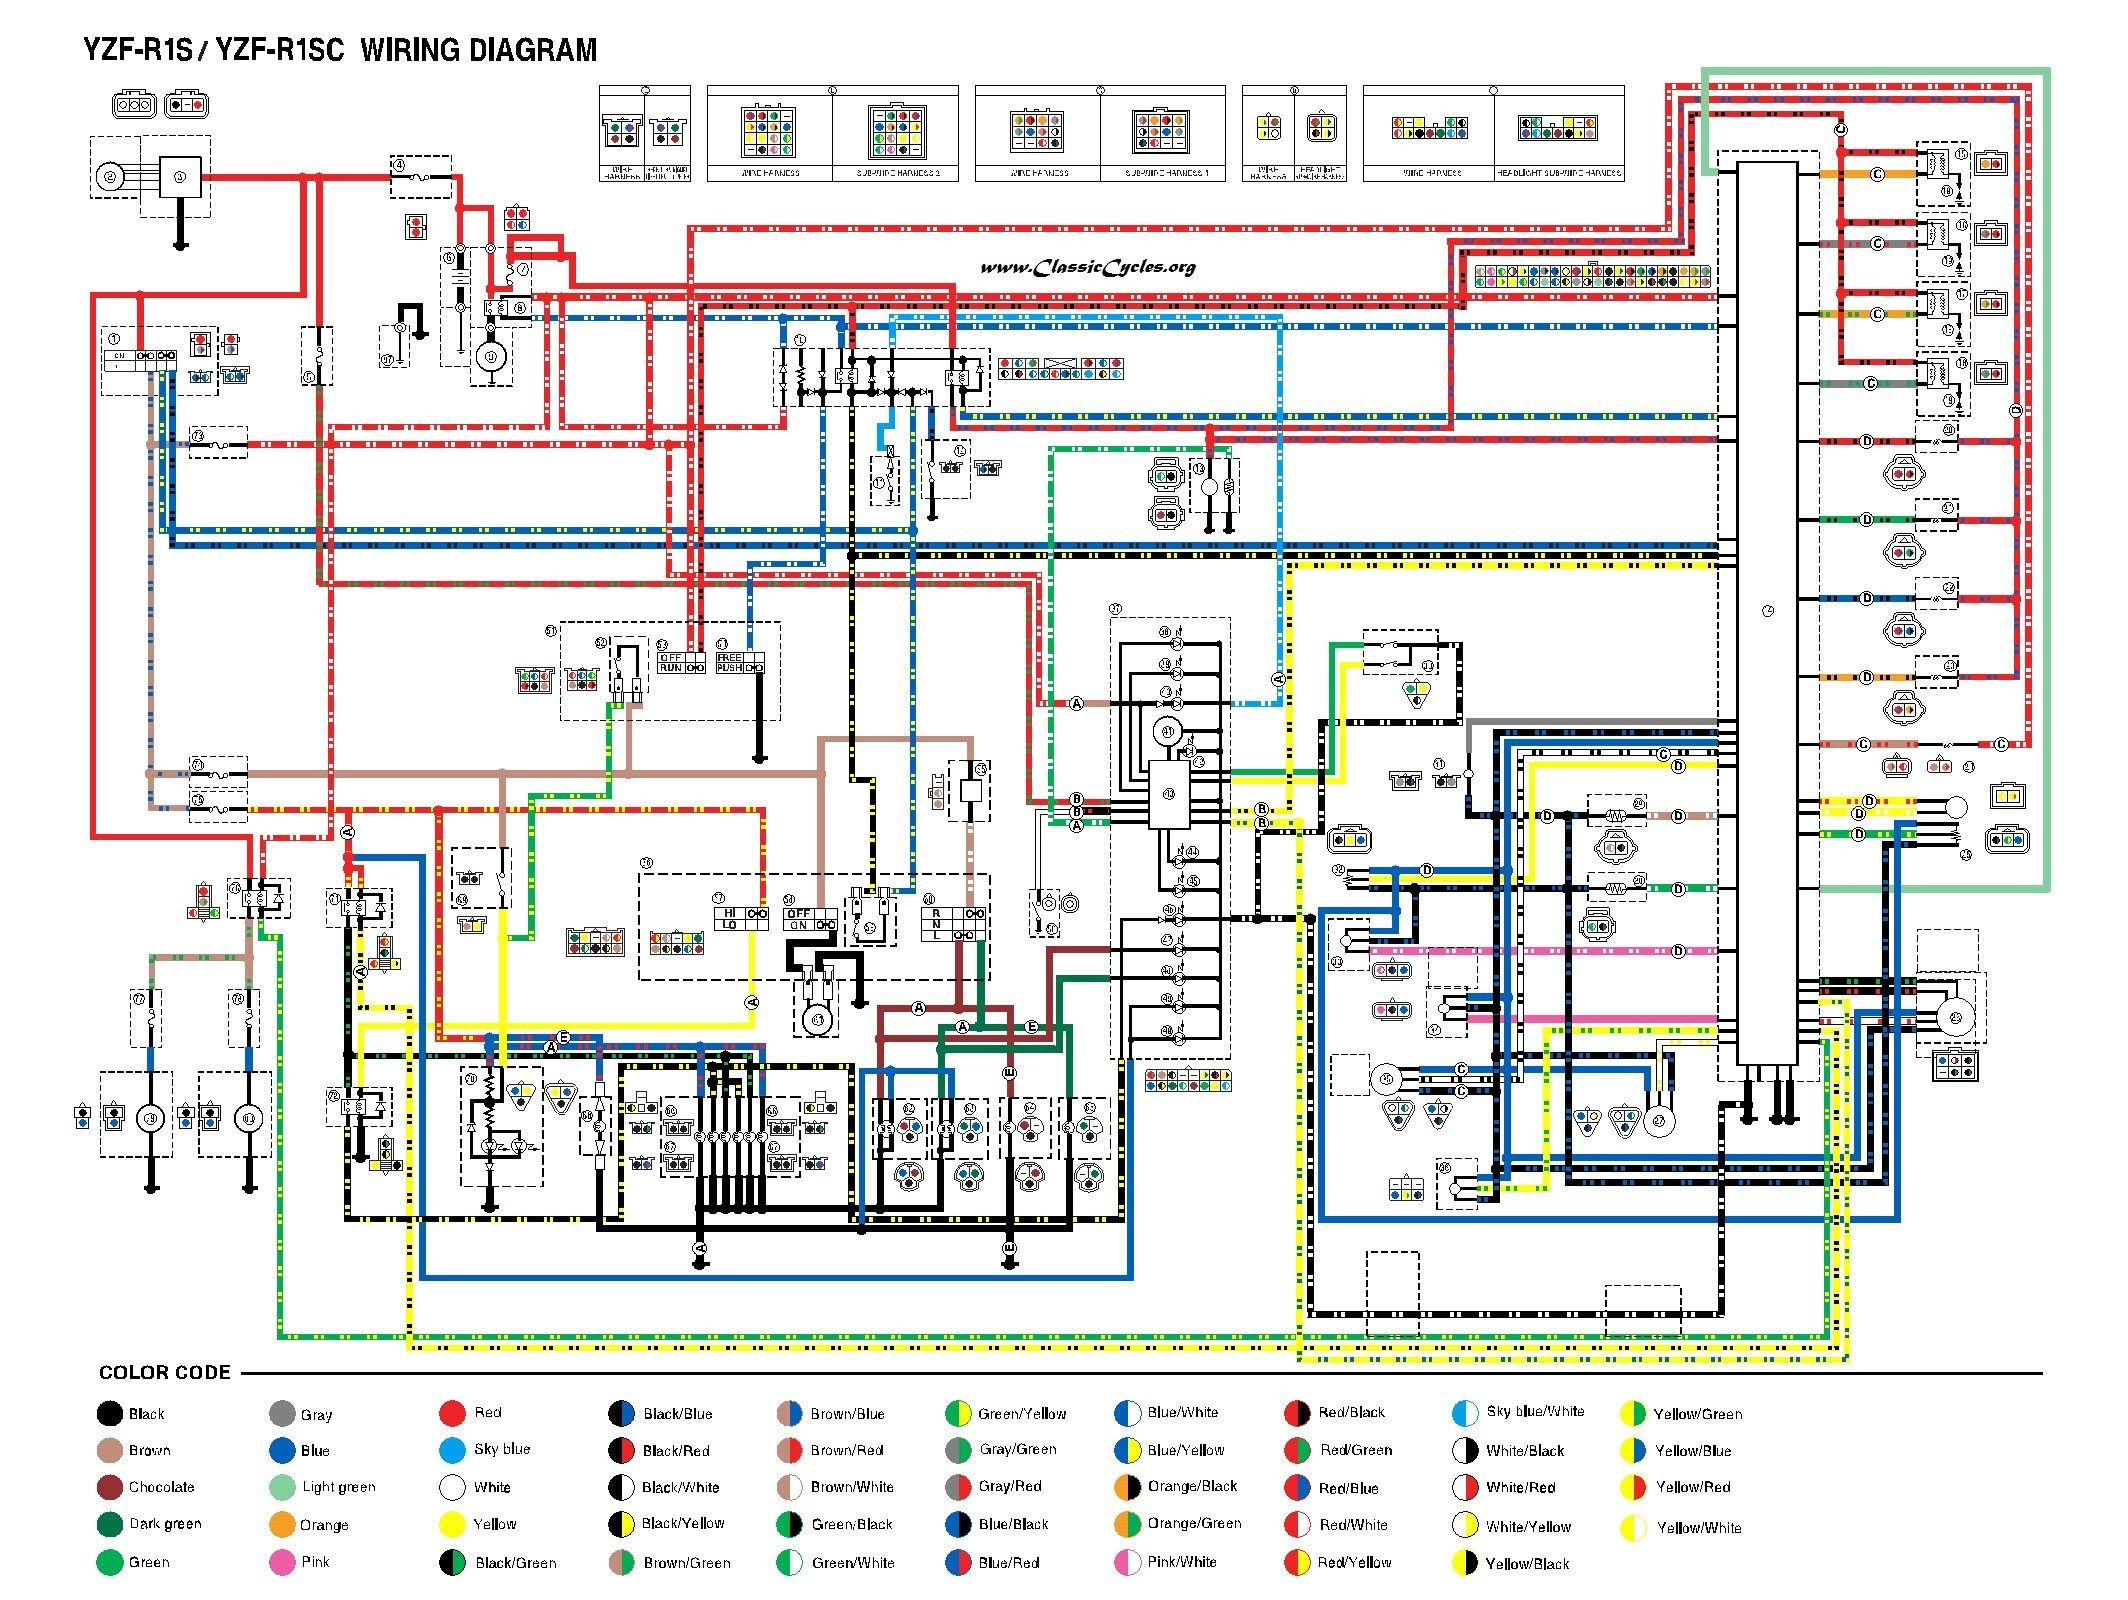 wiring diagram yamaha virago 4 iovegzgv southdarfurradio info \u2022yamaha virago wiring diagram wiring diagram rh vw29 vom winnenthal de wiring diagram for 1983 yamaha